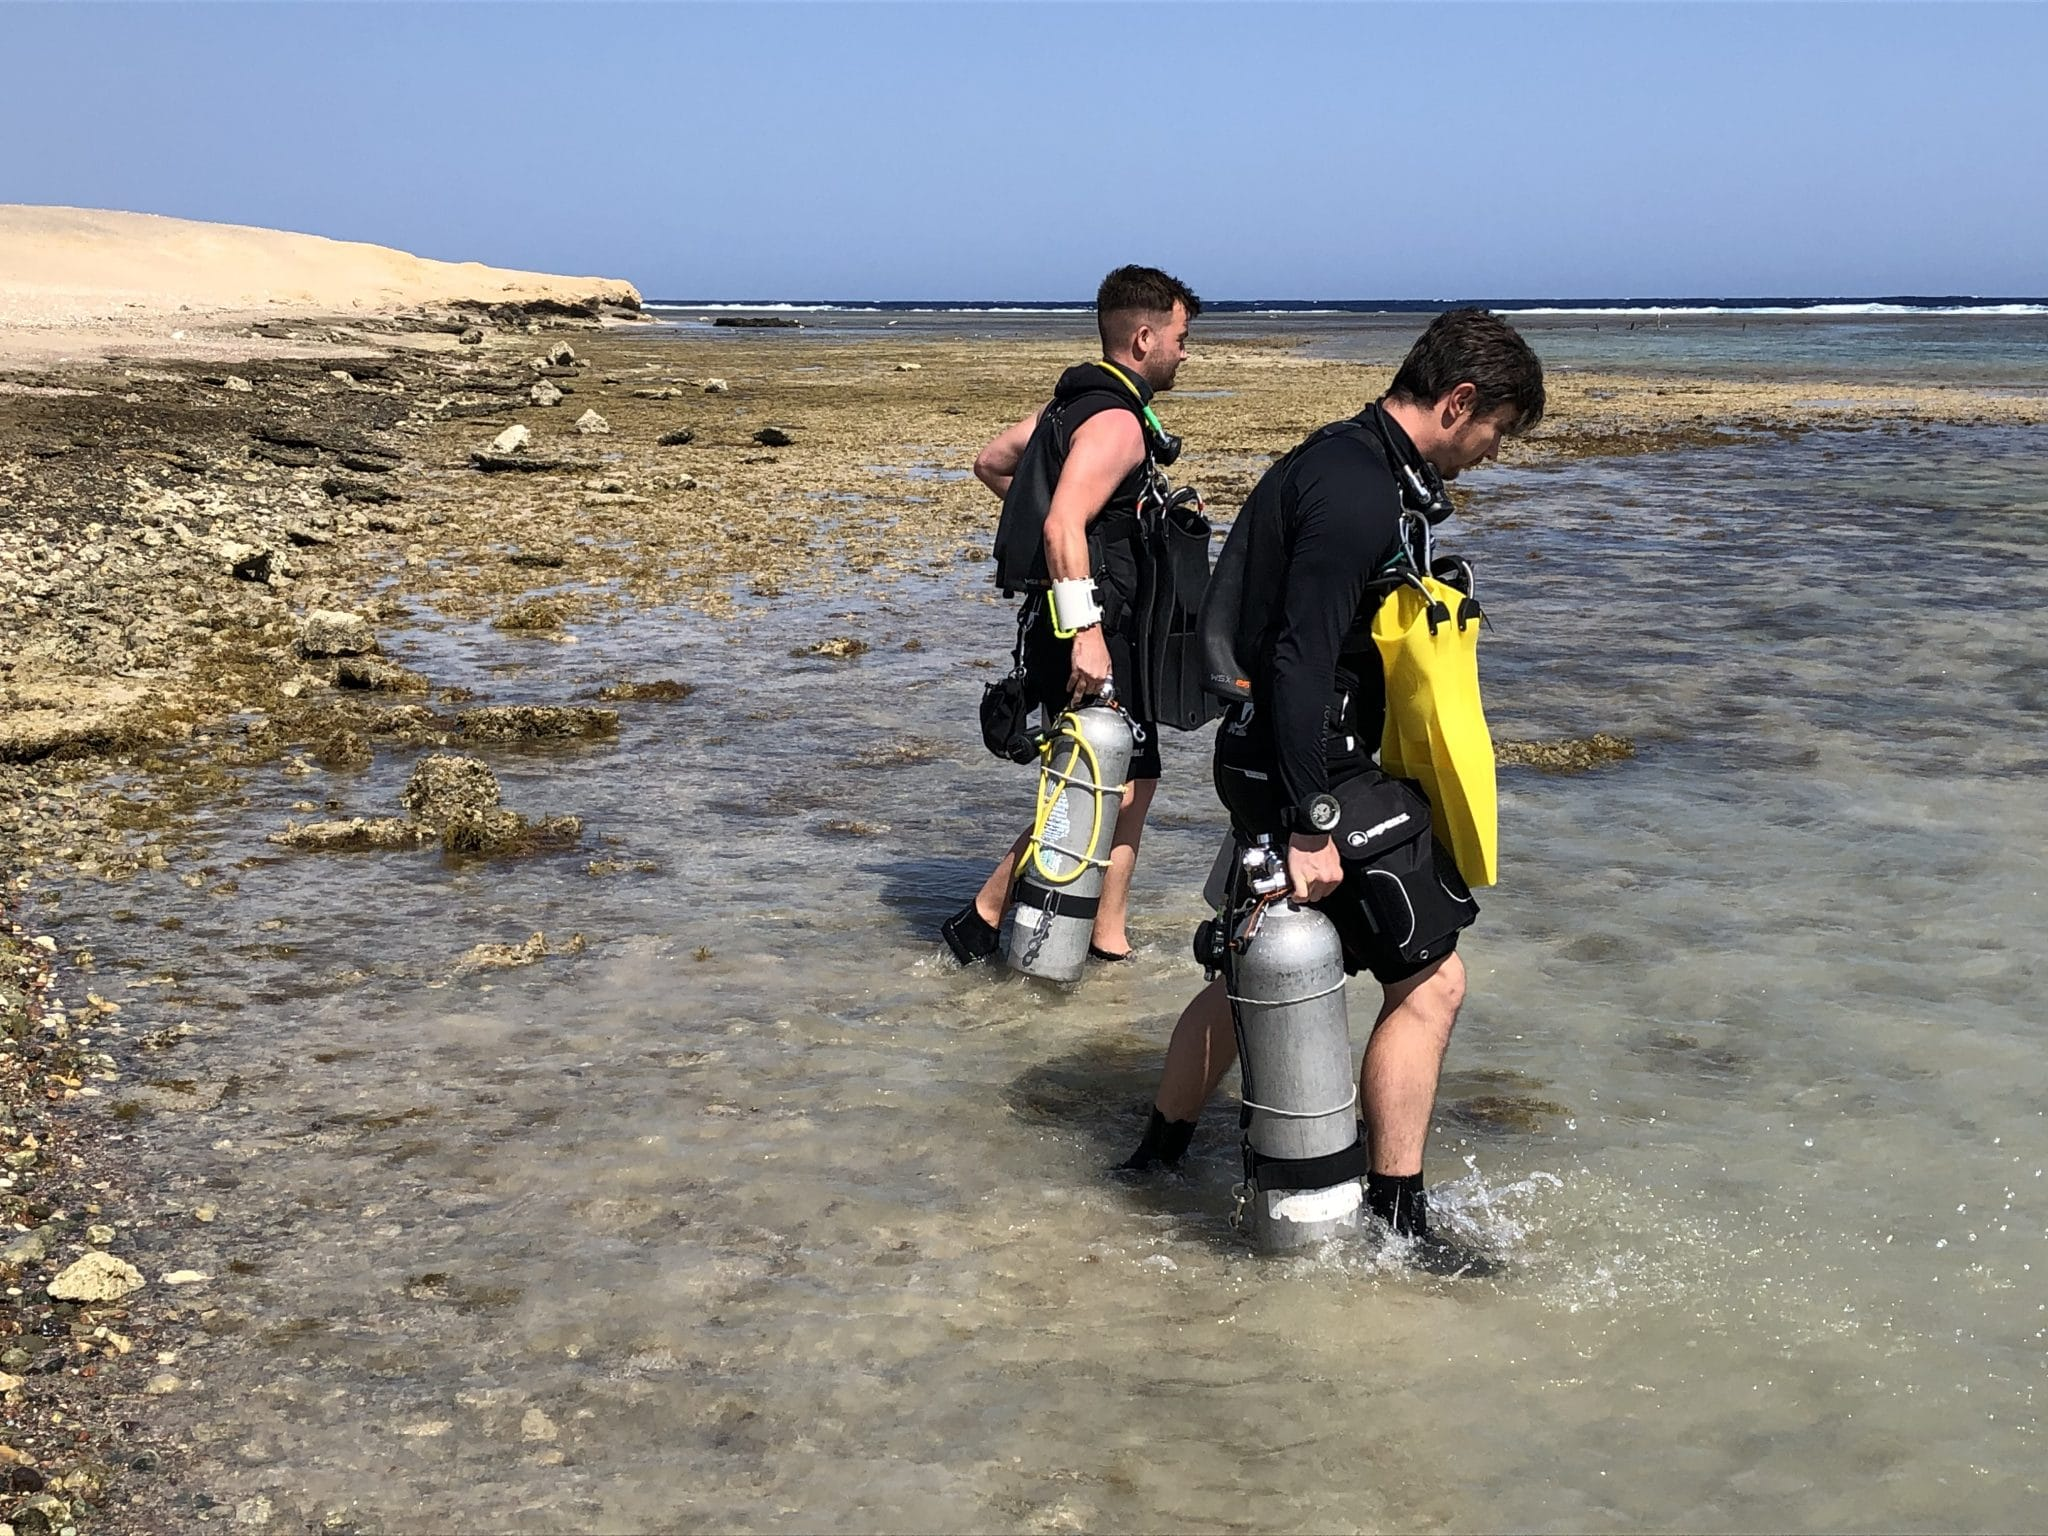 Deptherapy Ambassadors Tom Oates and Tom Swarbrick on their RAID Sidemount course last week at Roots Red Sea. Photo – Deptherapy